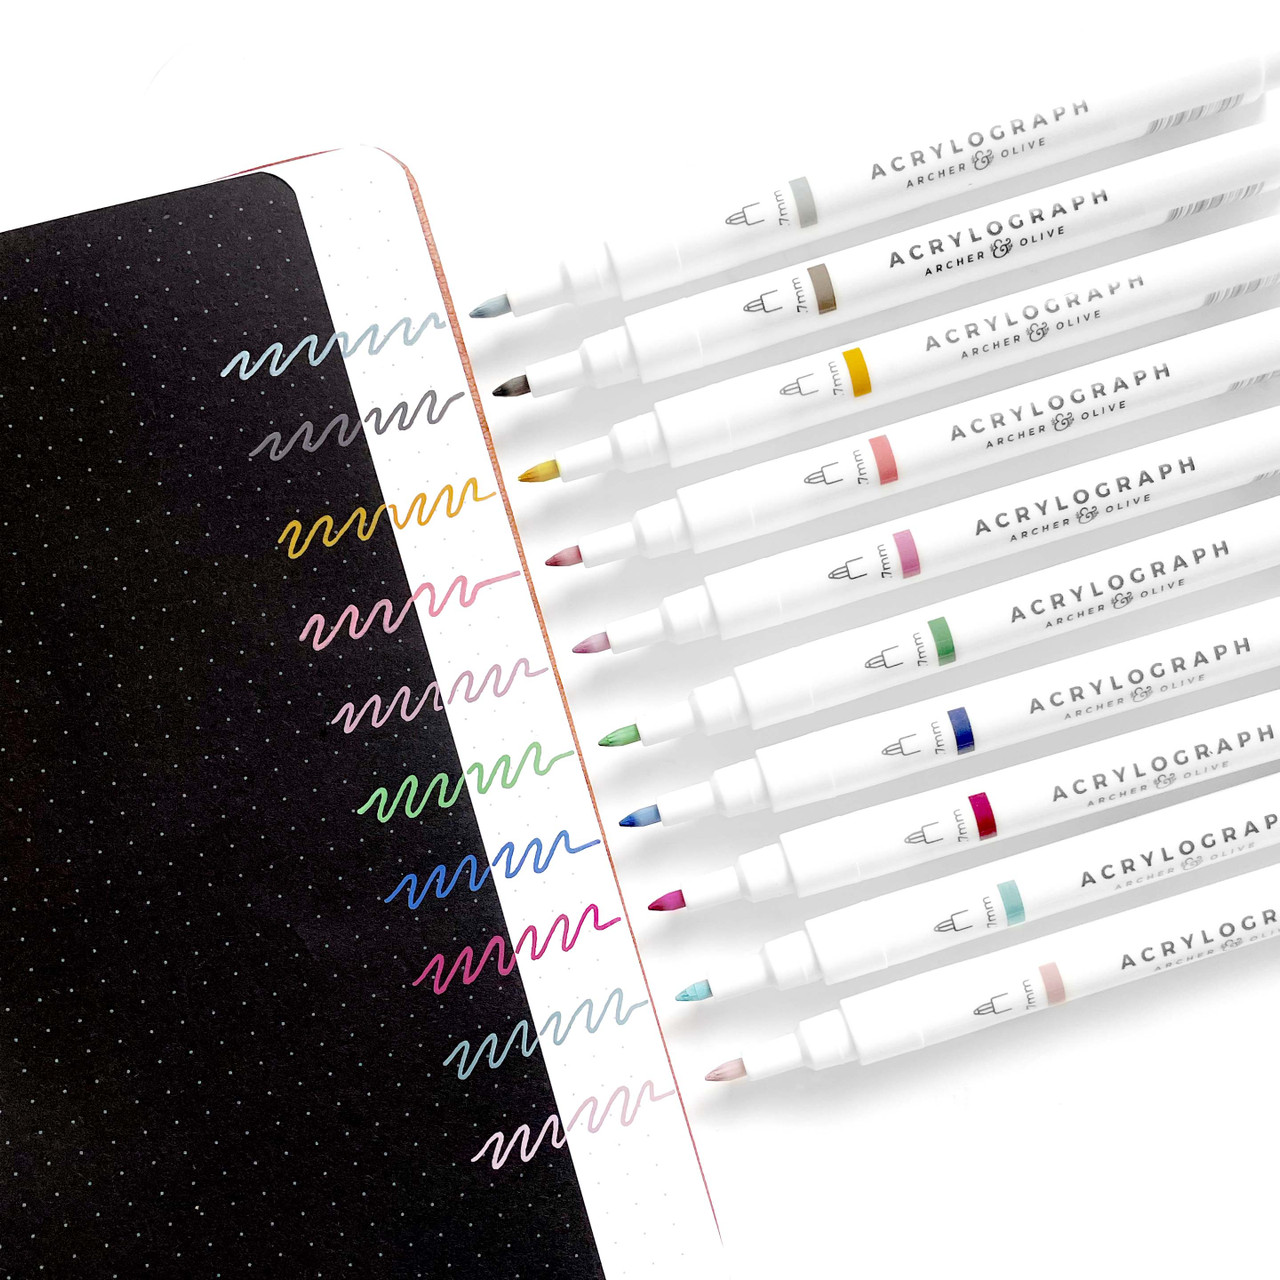 Acrylograph Pens Spellbind Collection 0.7mm Tip